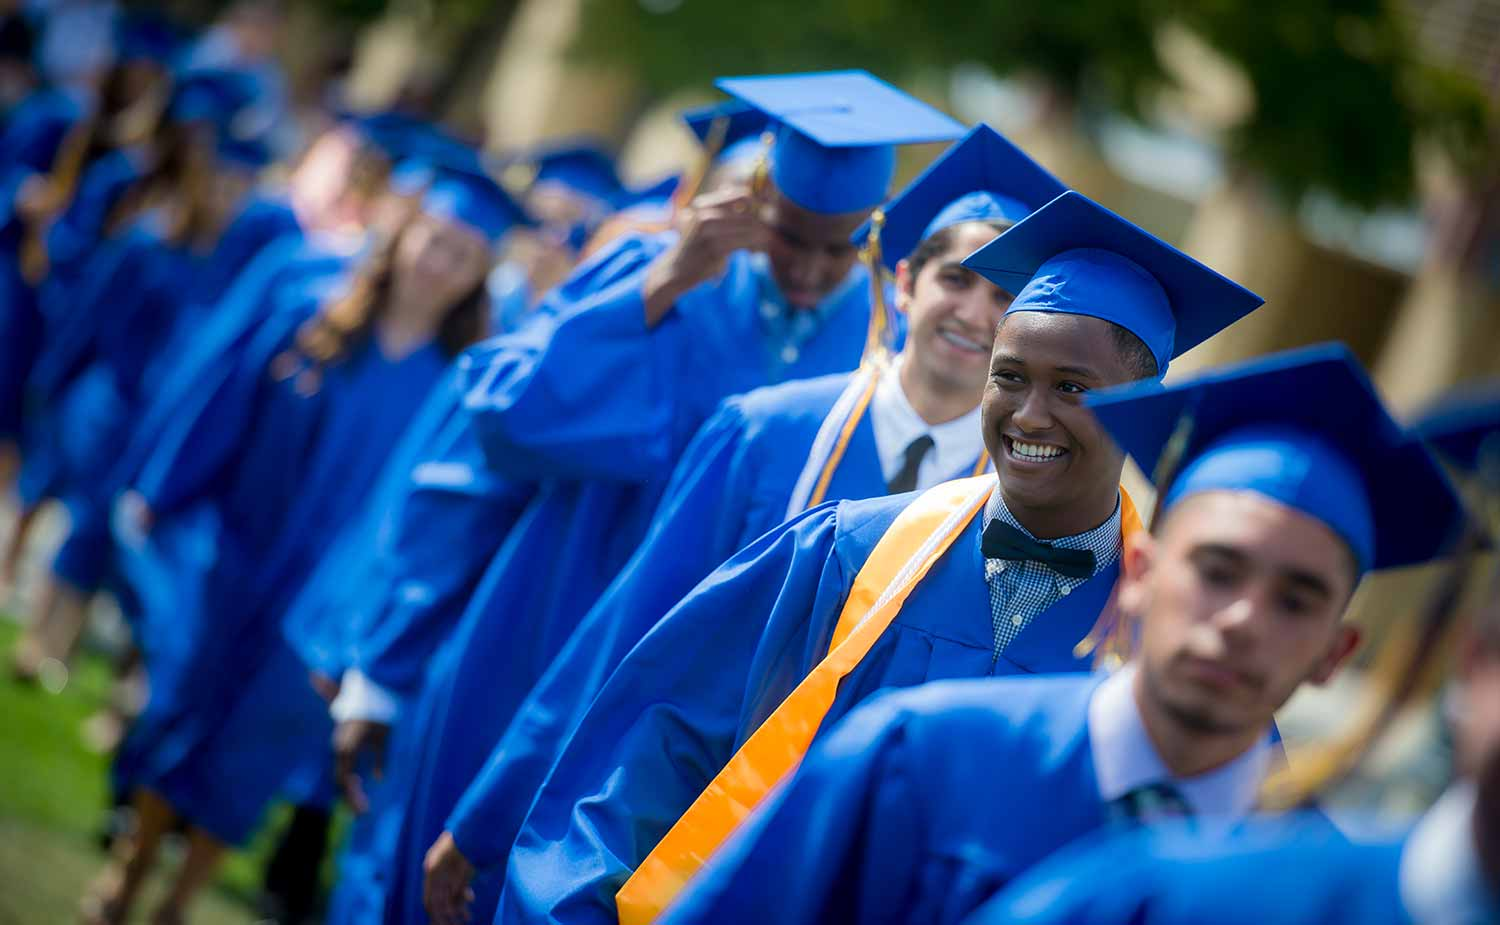 Photo: Preuss School 2015 graduates